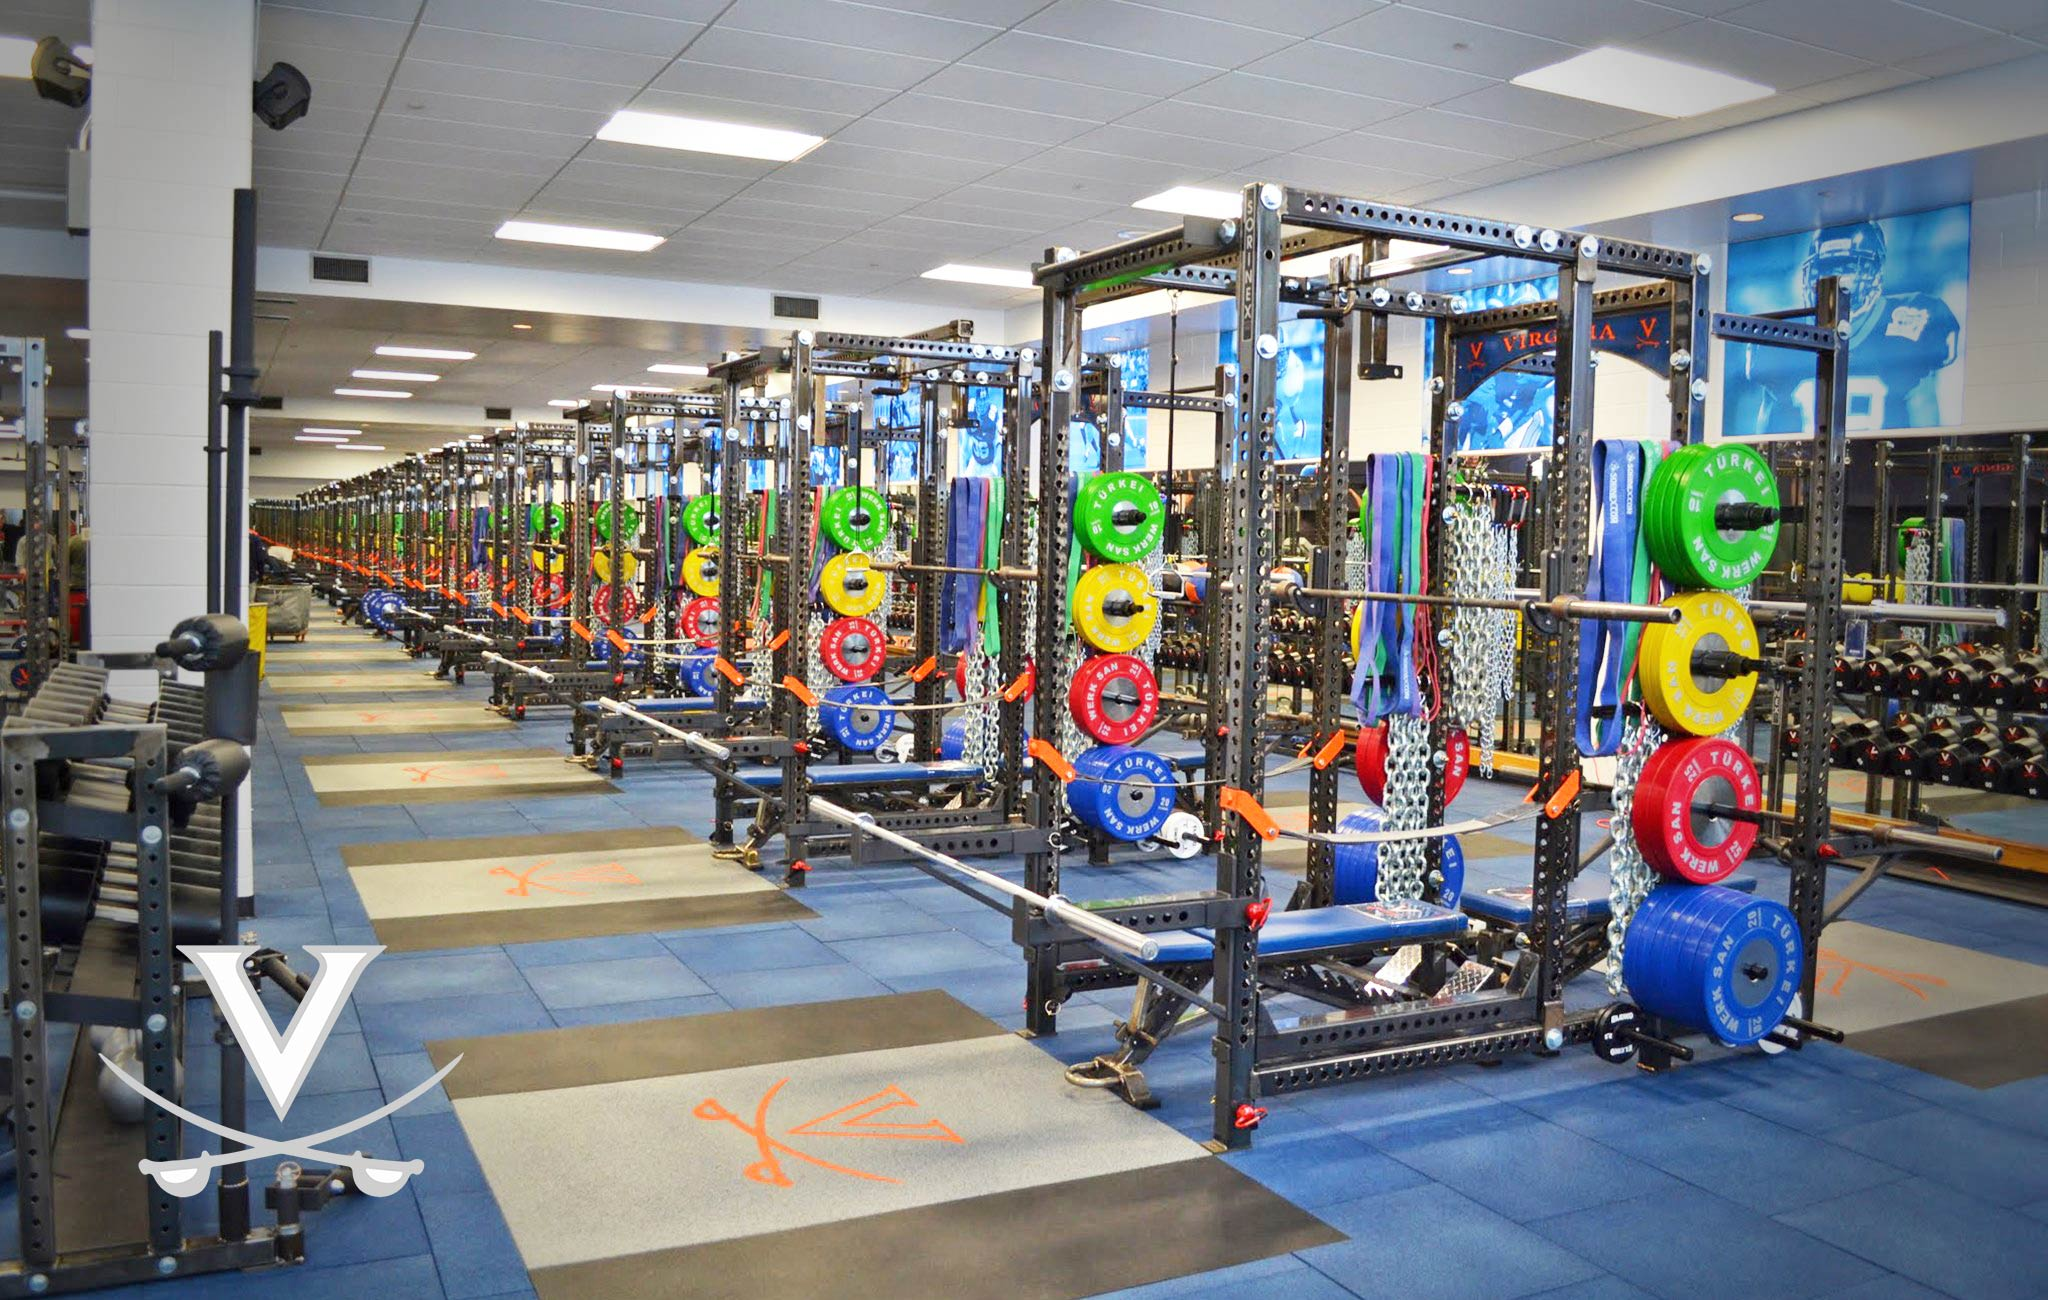 University of Virginia Sorinex strength and conditioning facility